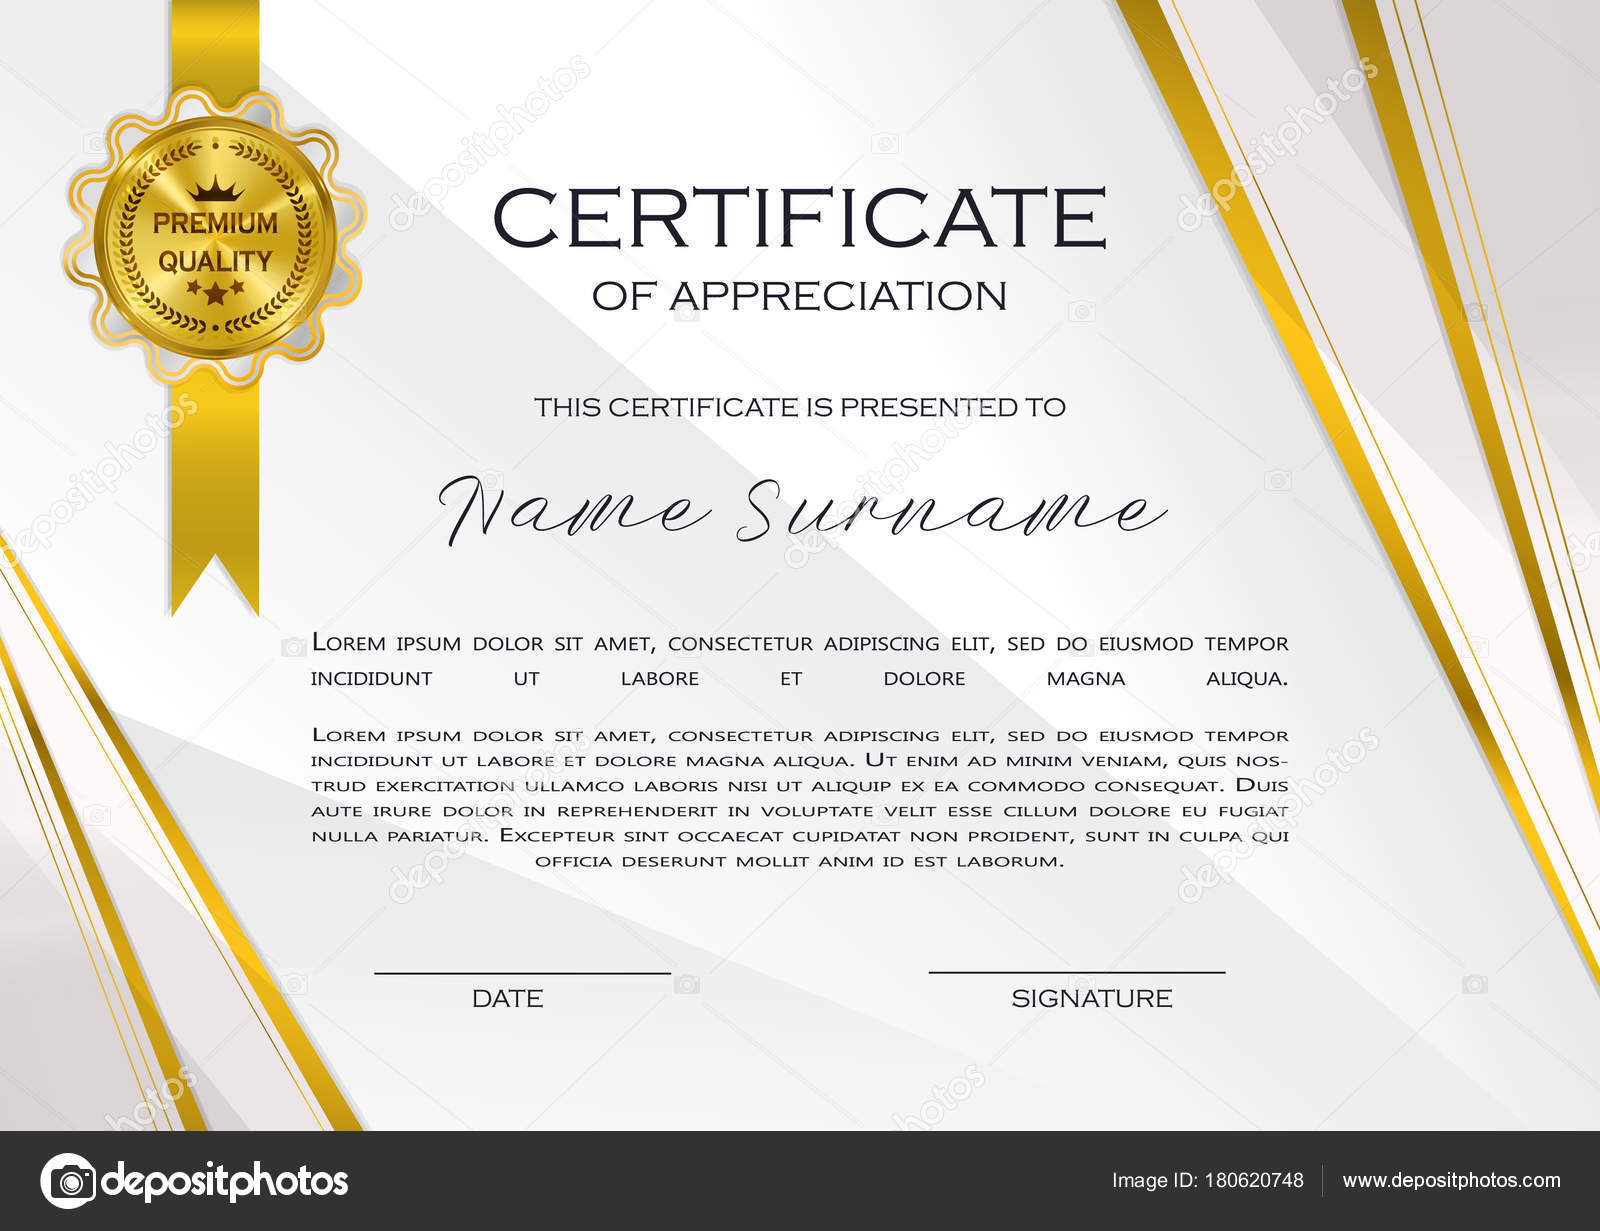 Qualification certificate appreciation design elegant luxury modern qualification certificate of appreciation design elegant luxury and modern pattern best quality award template with white and golden tapes shapes badge yadclub Gallery